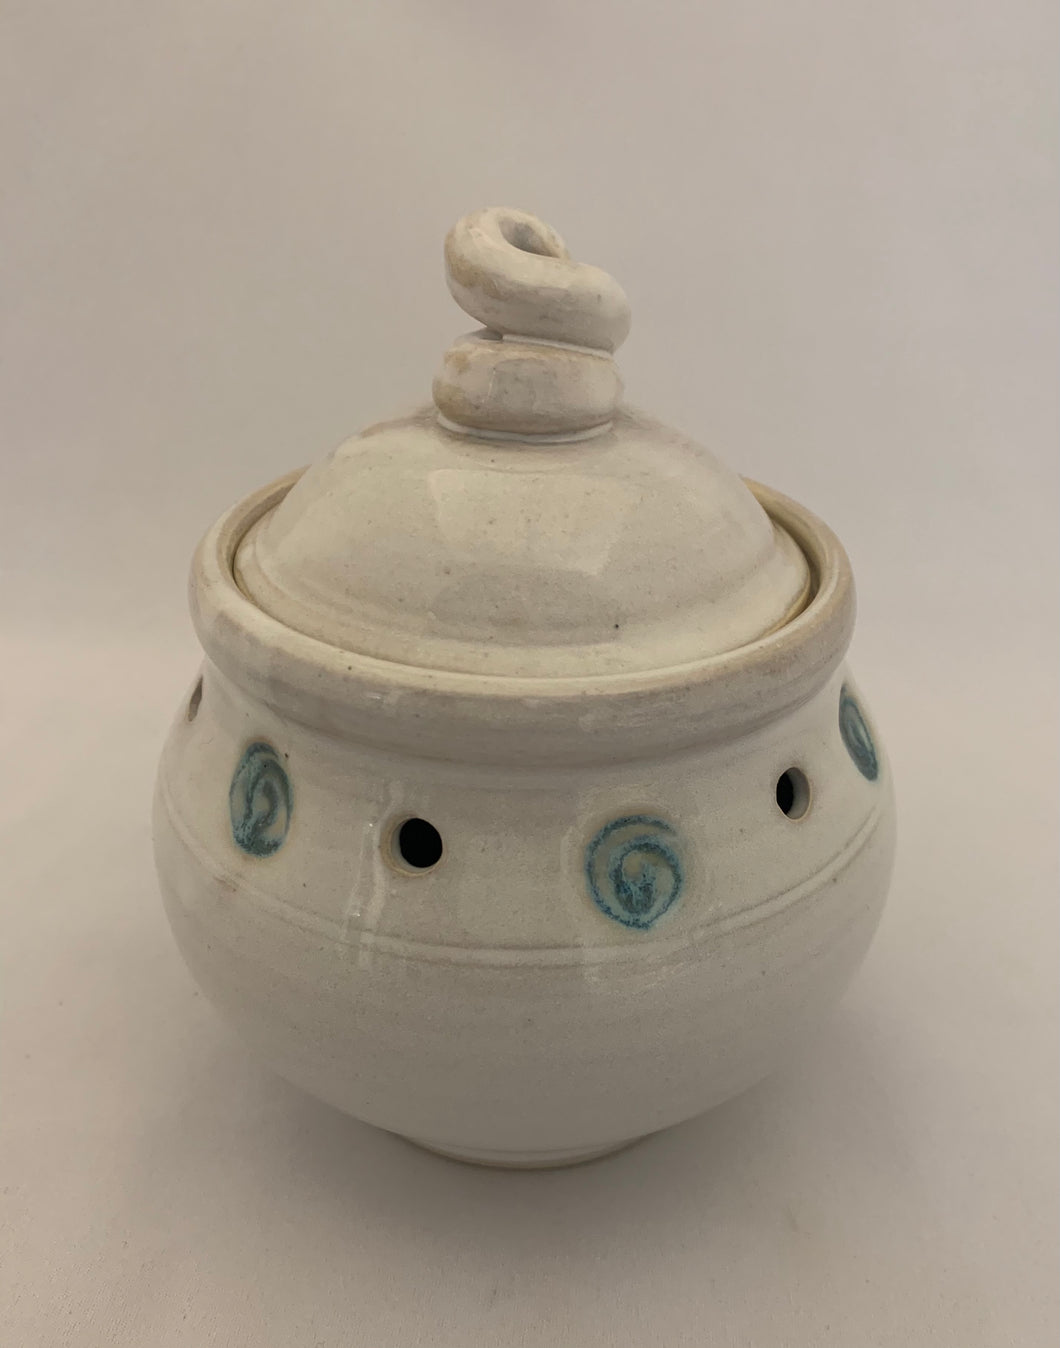 Garlic Jar – Chun White with Turquoise Swirl Stamps